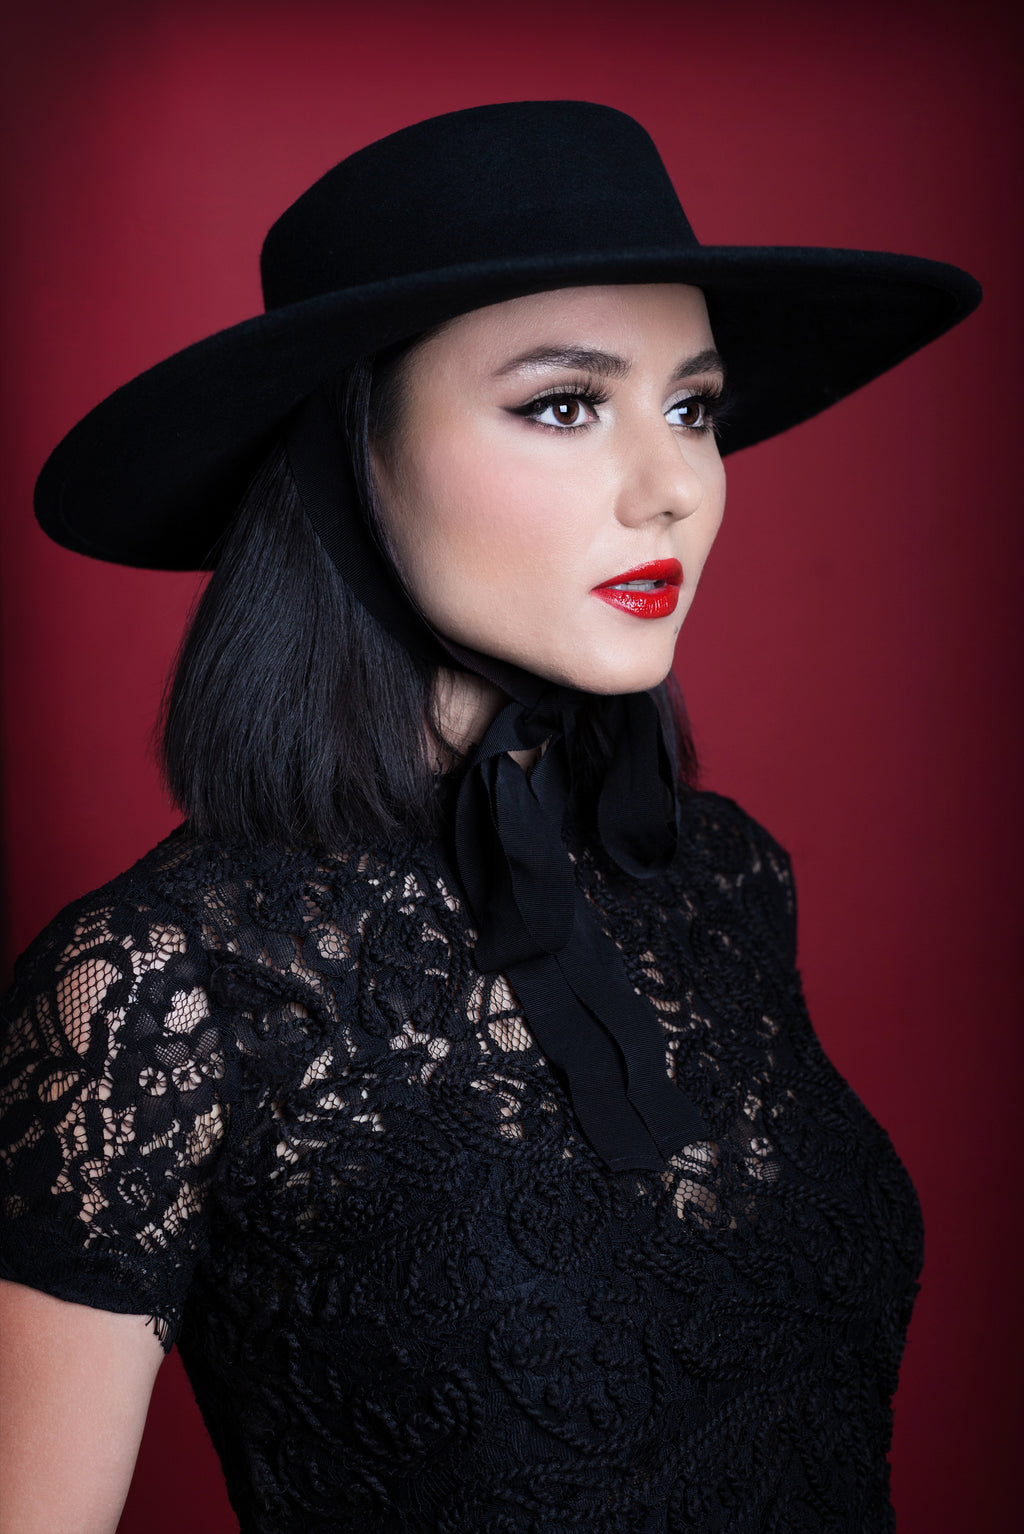 A pinup model posing against a red backdrop while wearing a black, wide brim American Gothic hat.